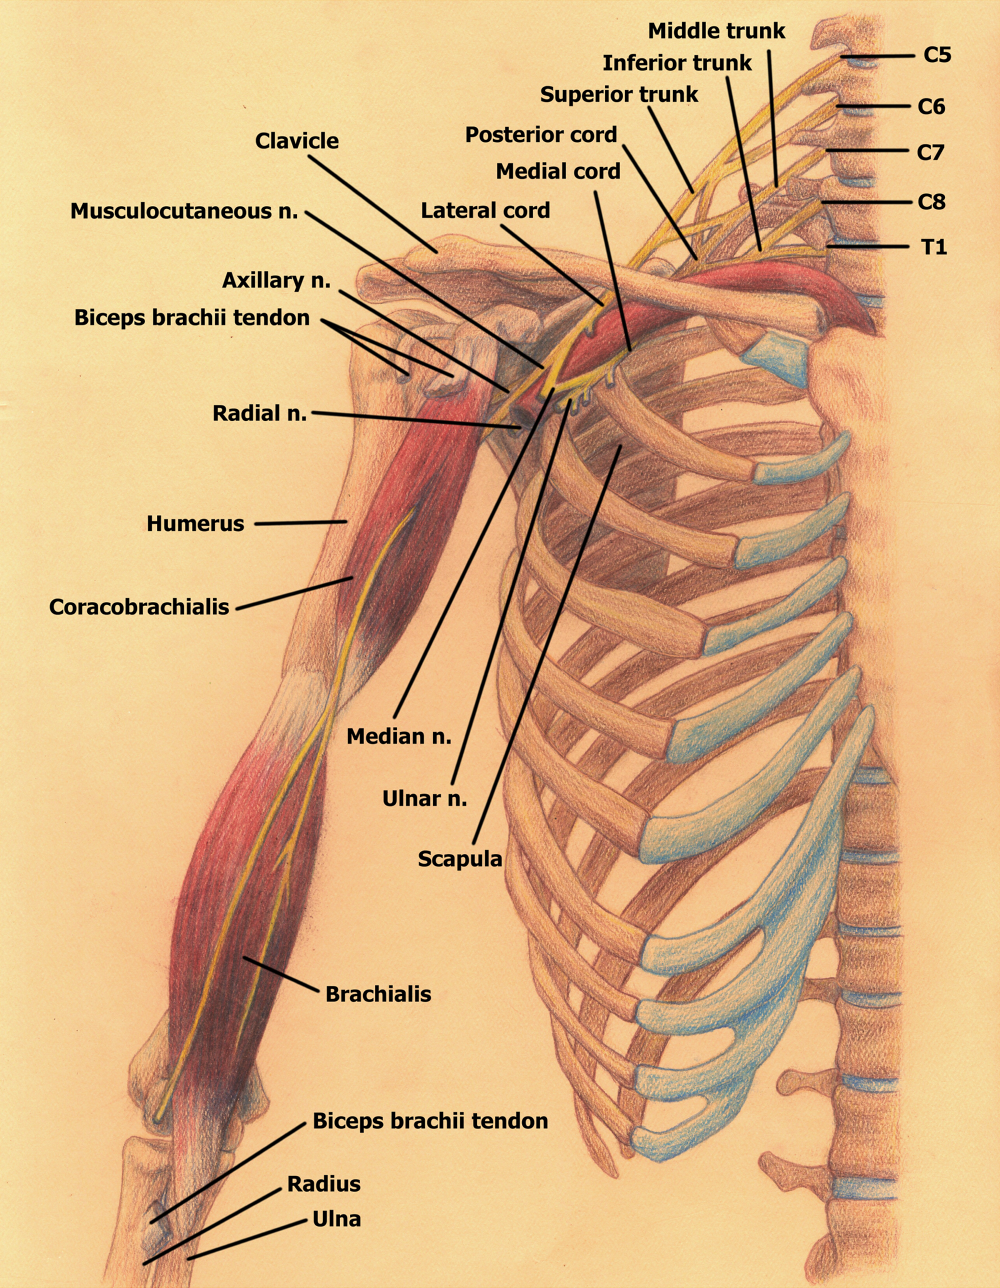 Branching of the Brachial Plexus (anterior view) by Blique on DeviantArt